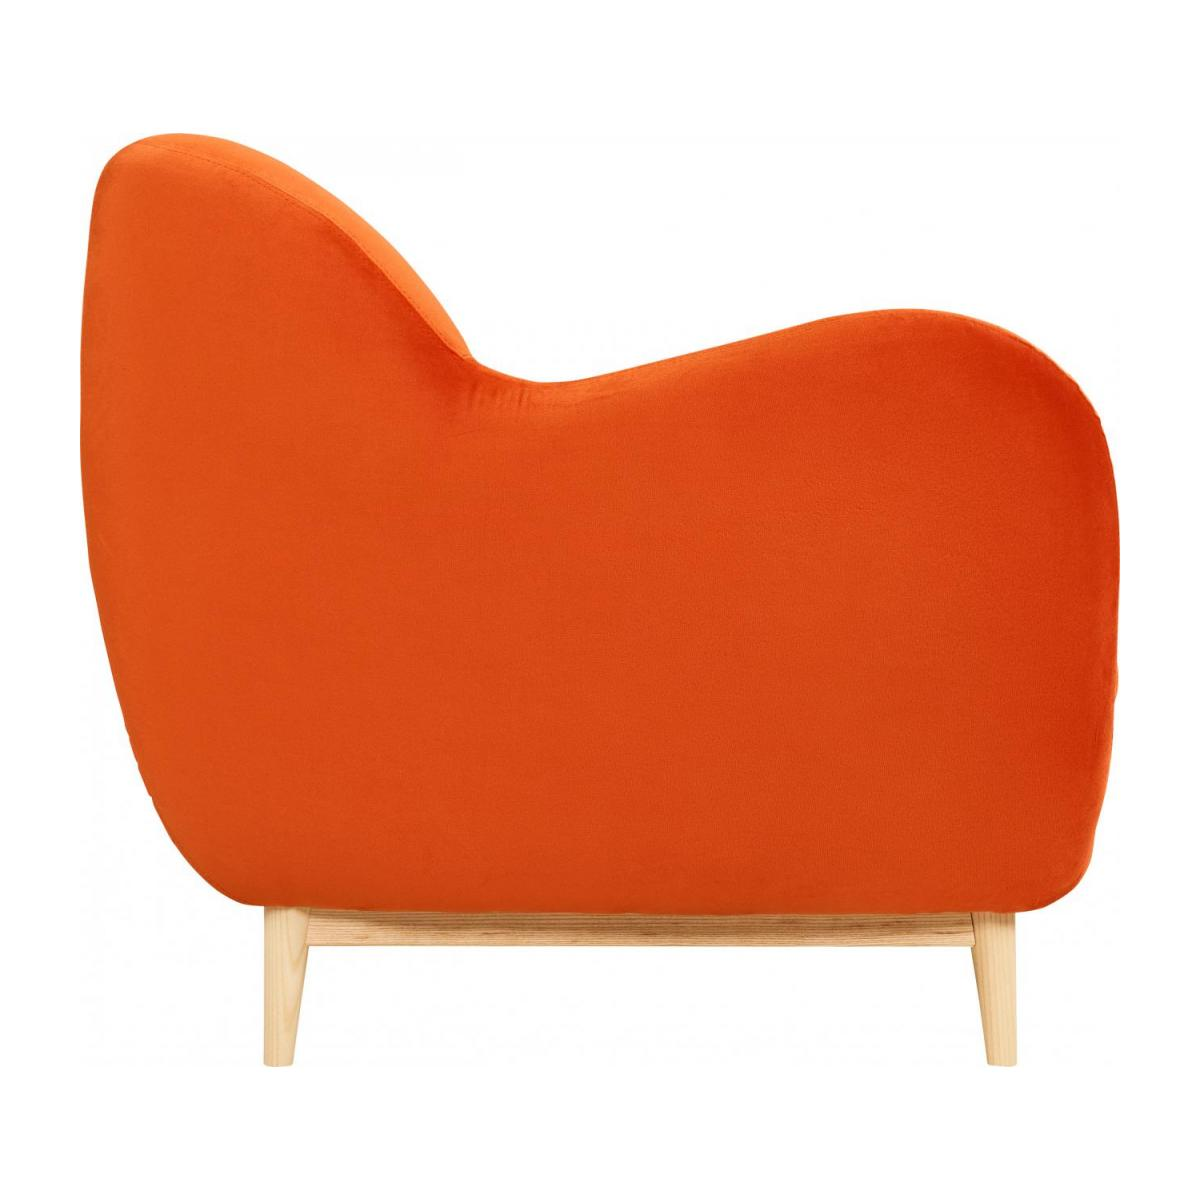 Canapé 3 places en velours - Orange - Design by Adrien Carvès n°5